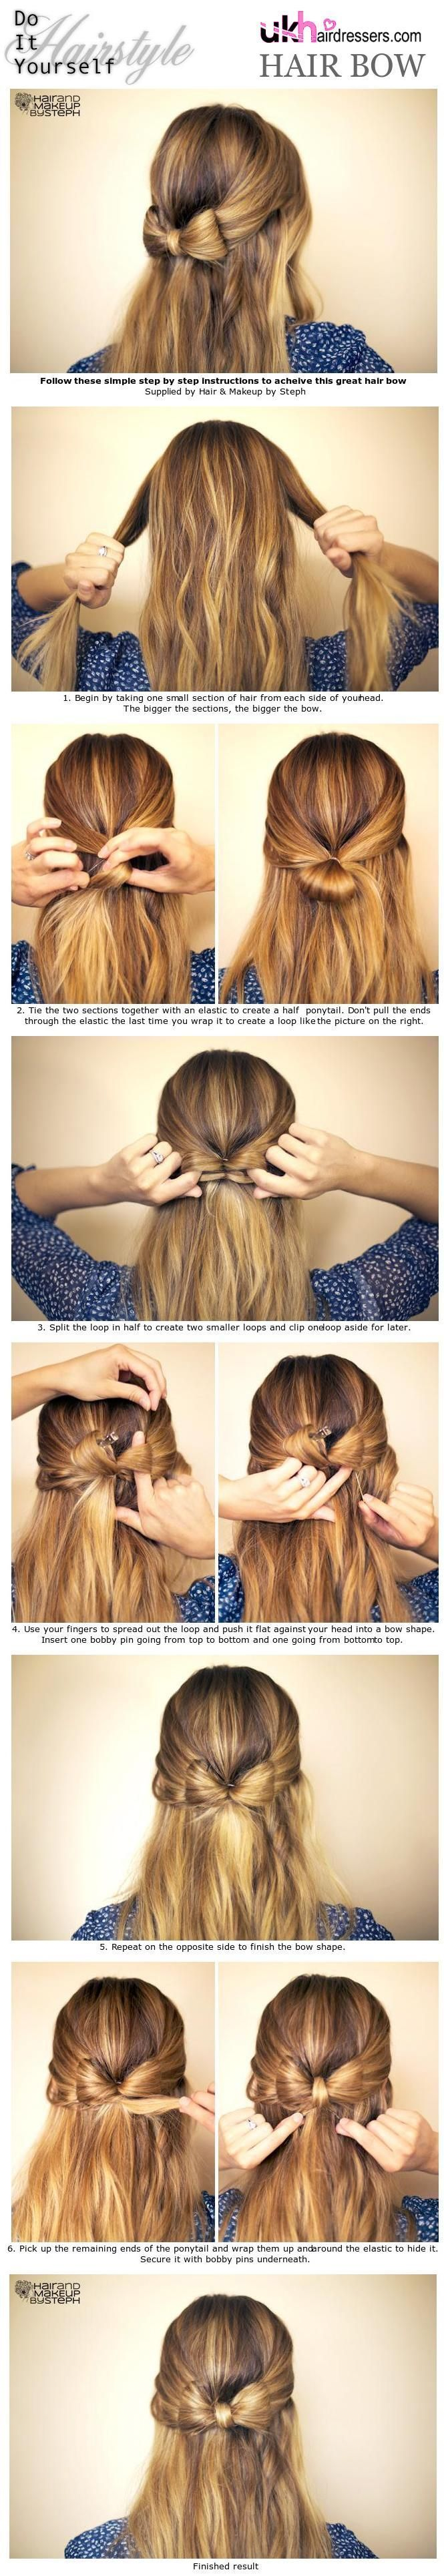 cute minute hairstyles for school hair bow hairstyles simple